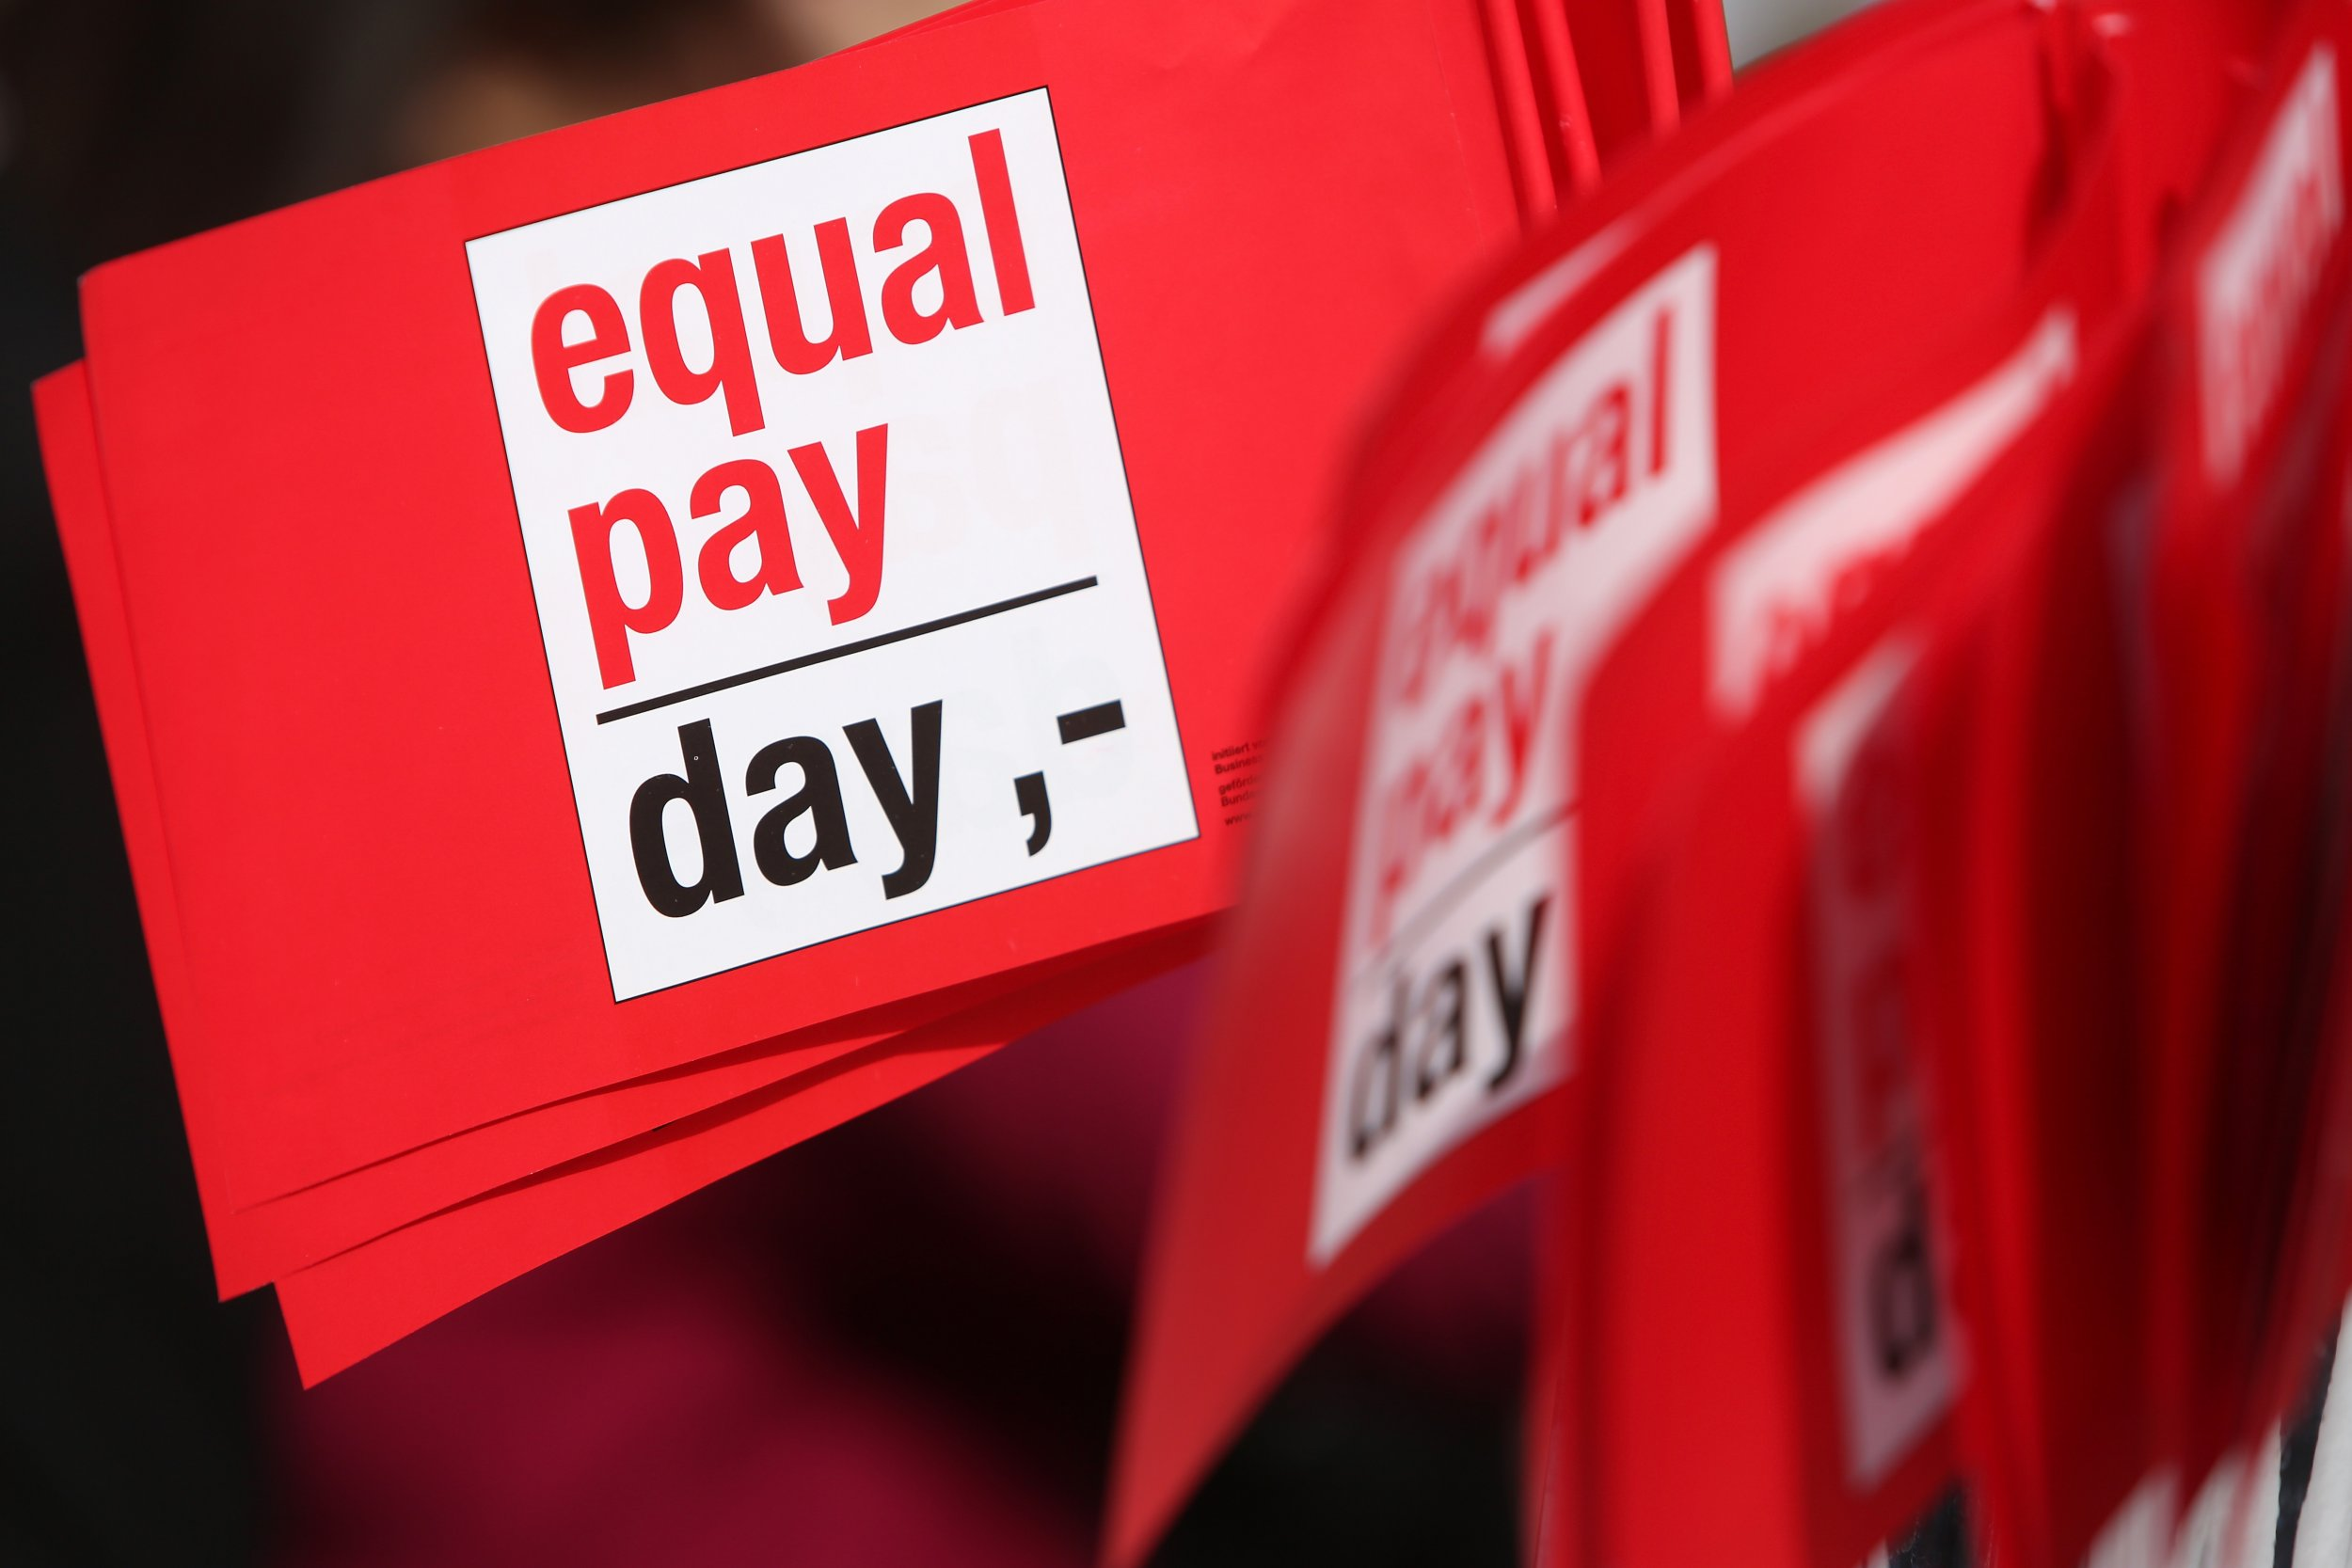 equal pay day iwf makes women feel victimized